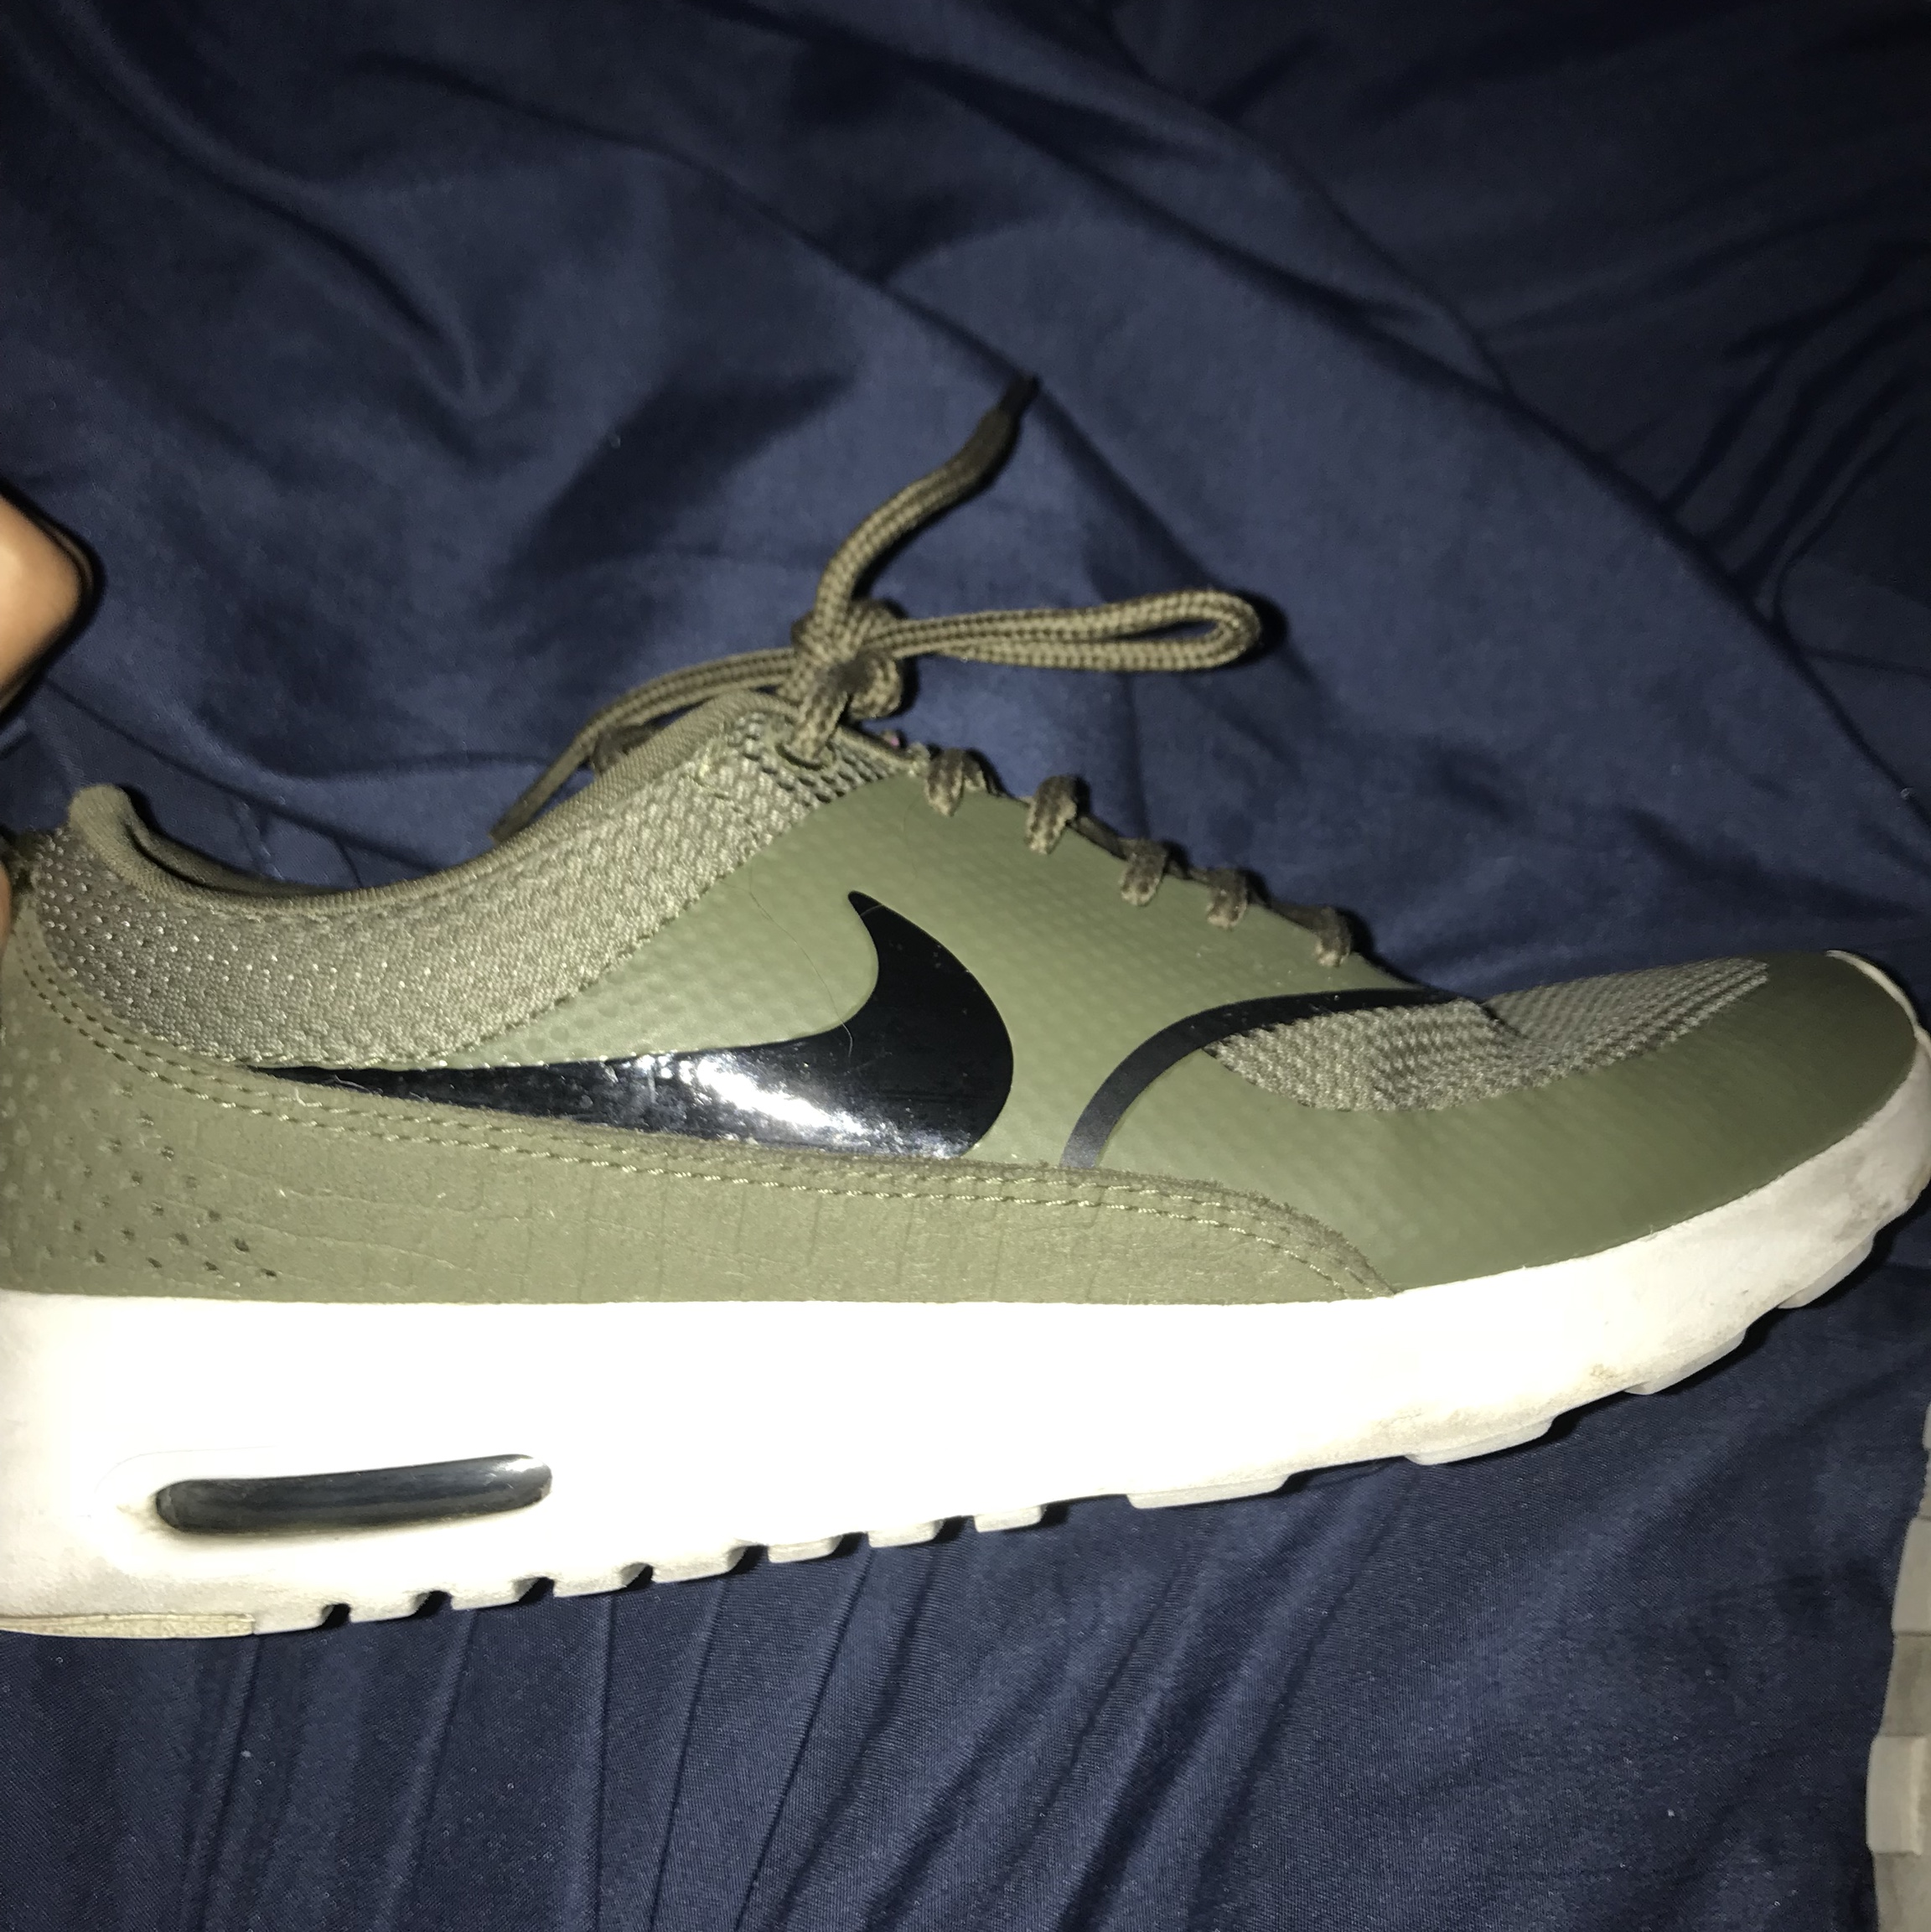 Nike Air max Thea SE olive green Size: 7 women $65 Depop